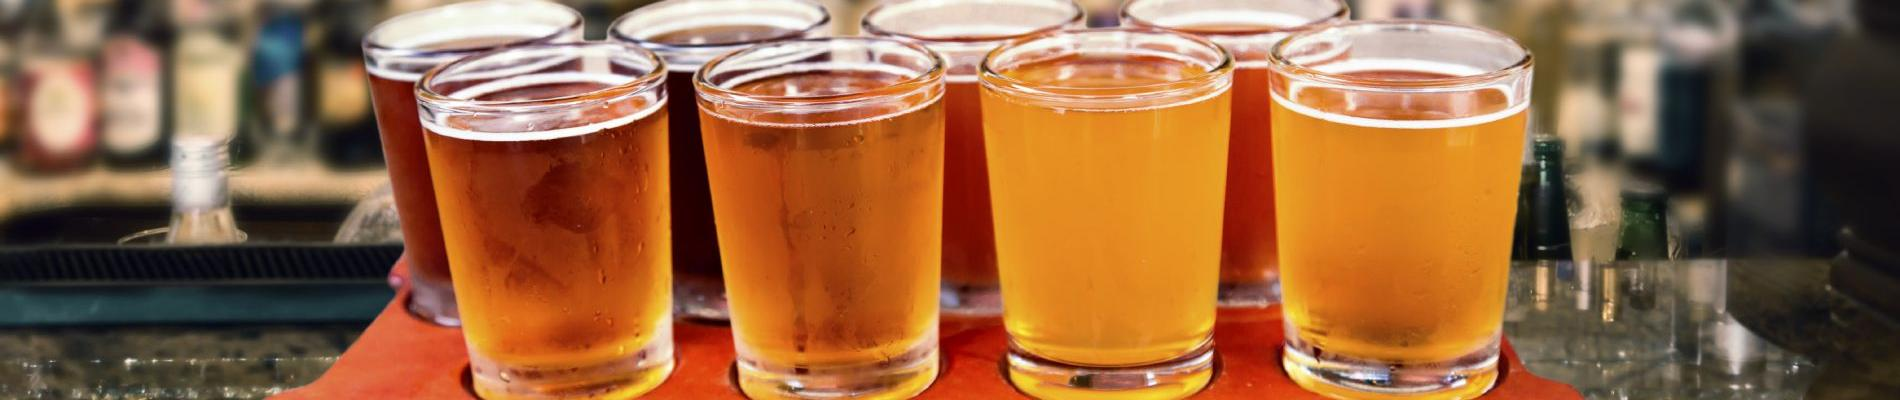 The Popularity of Craft Beer